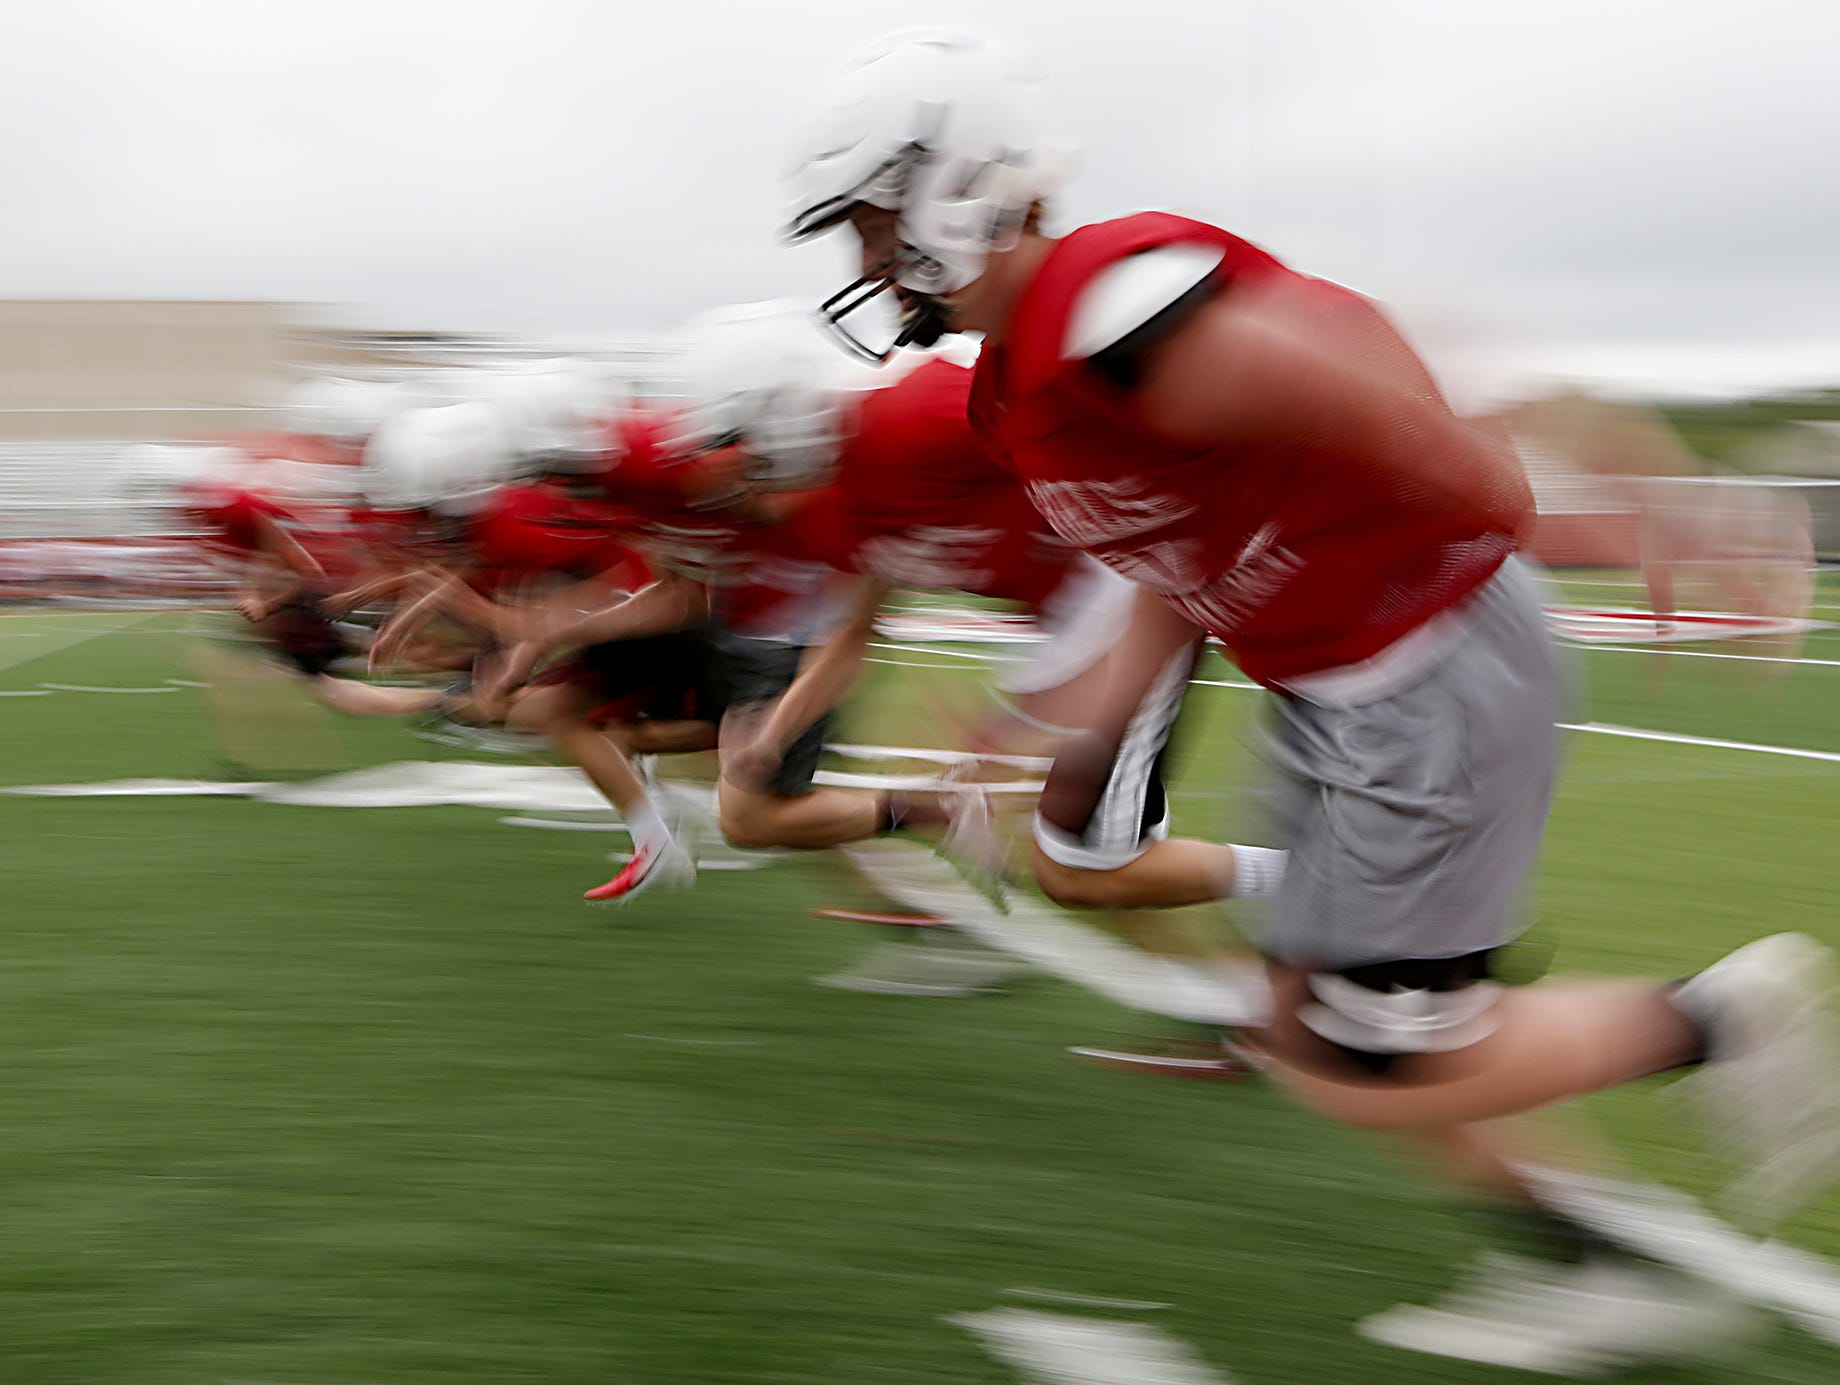 The Oak Hills football team practices Wednesday, Aug. 1, 2018. E.L. Hubbard for the Enquirer